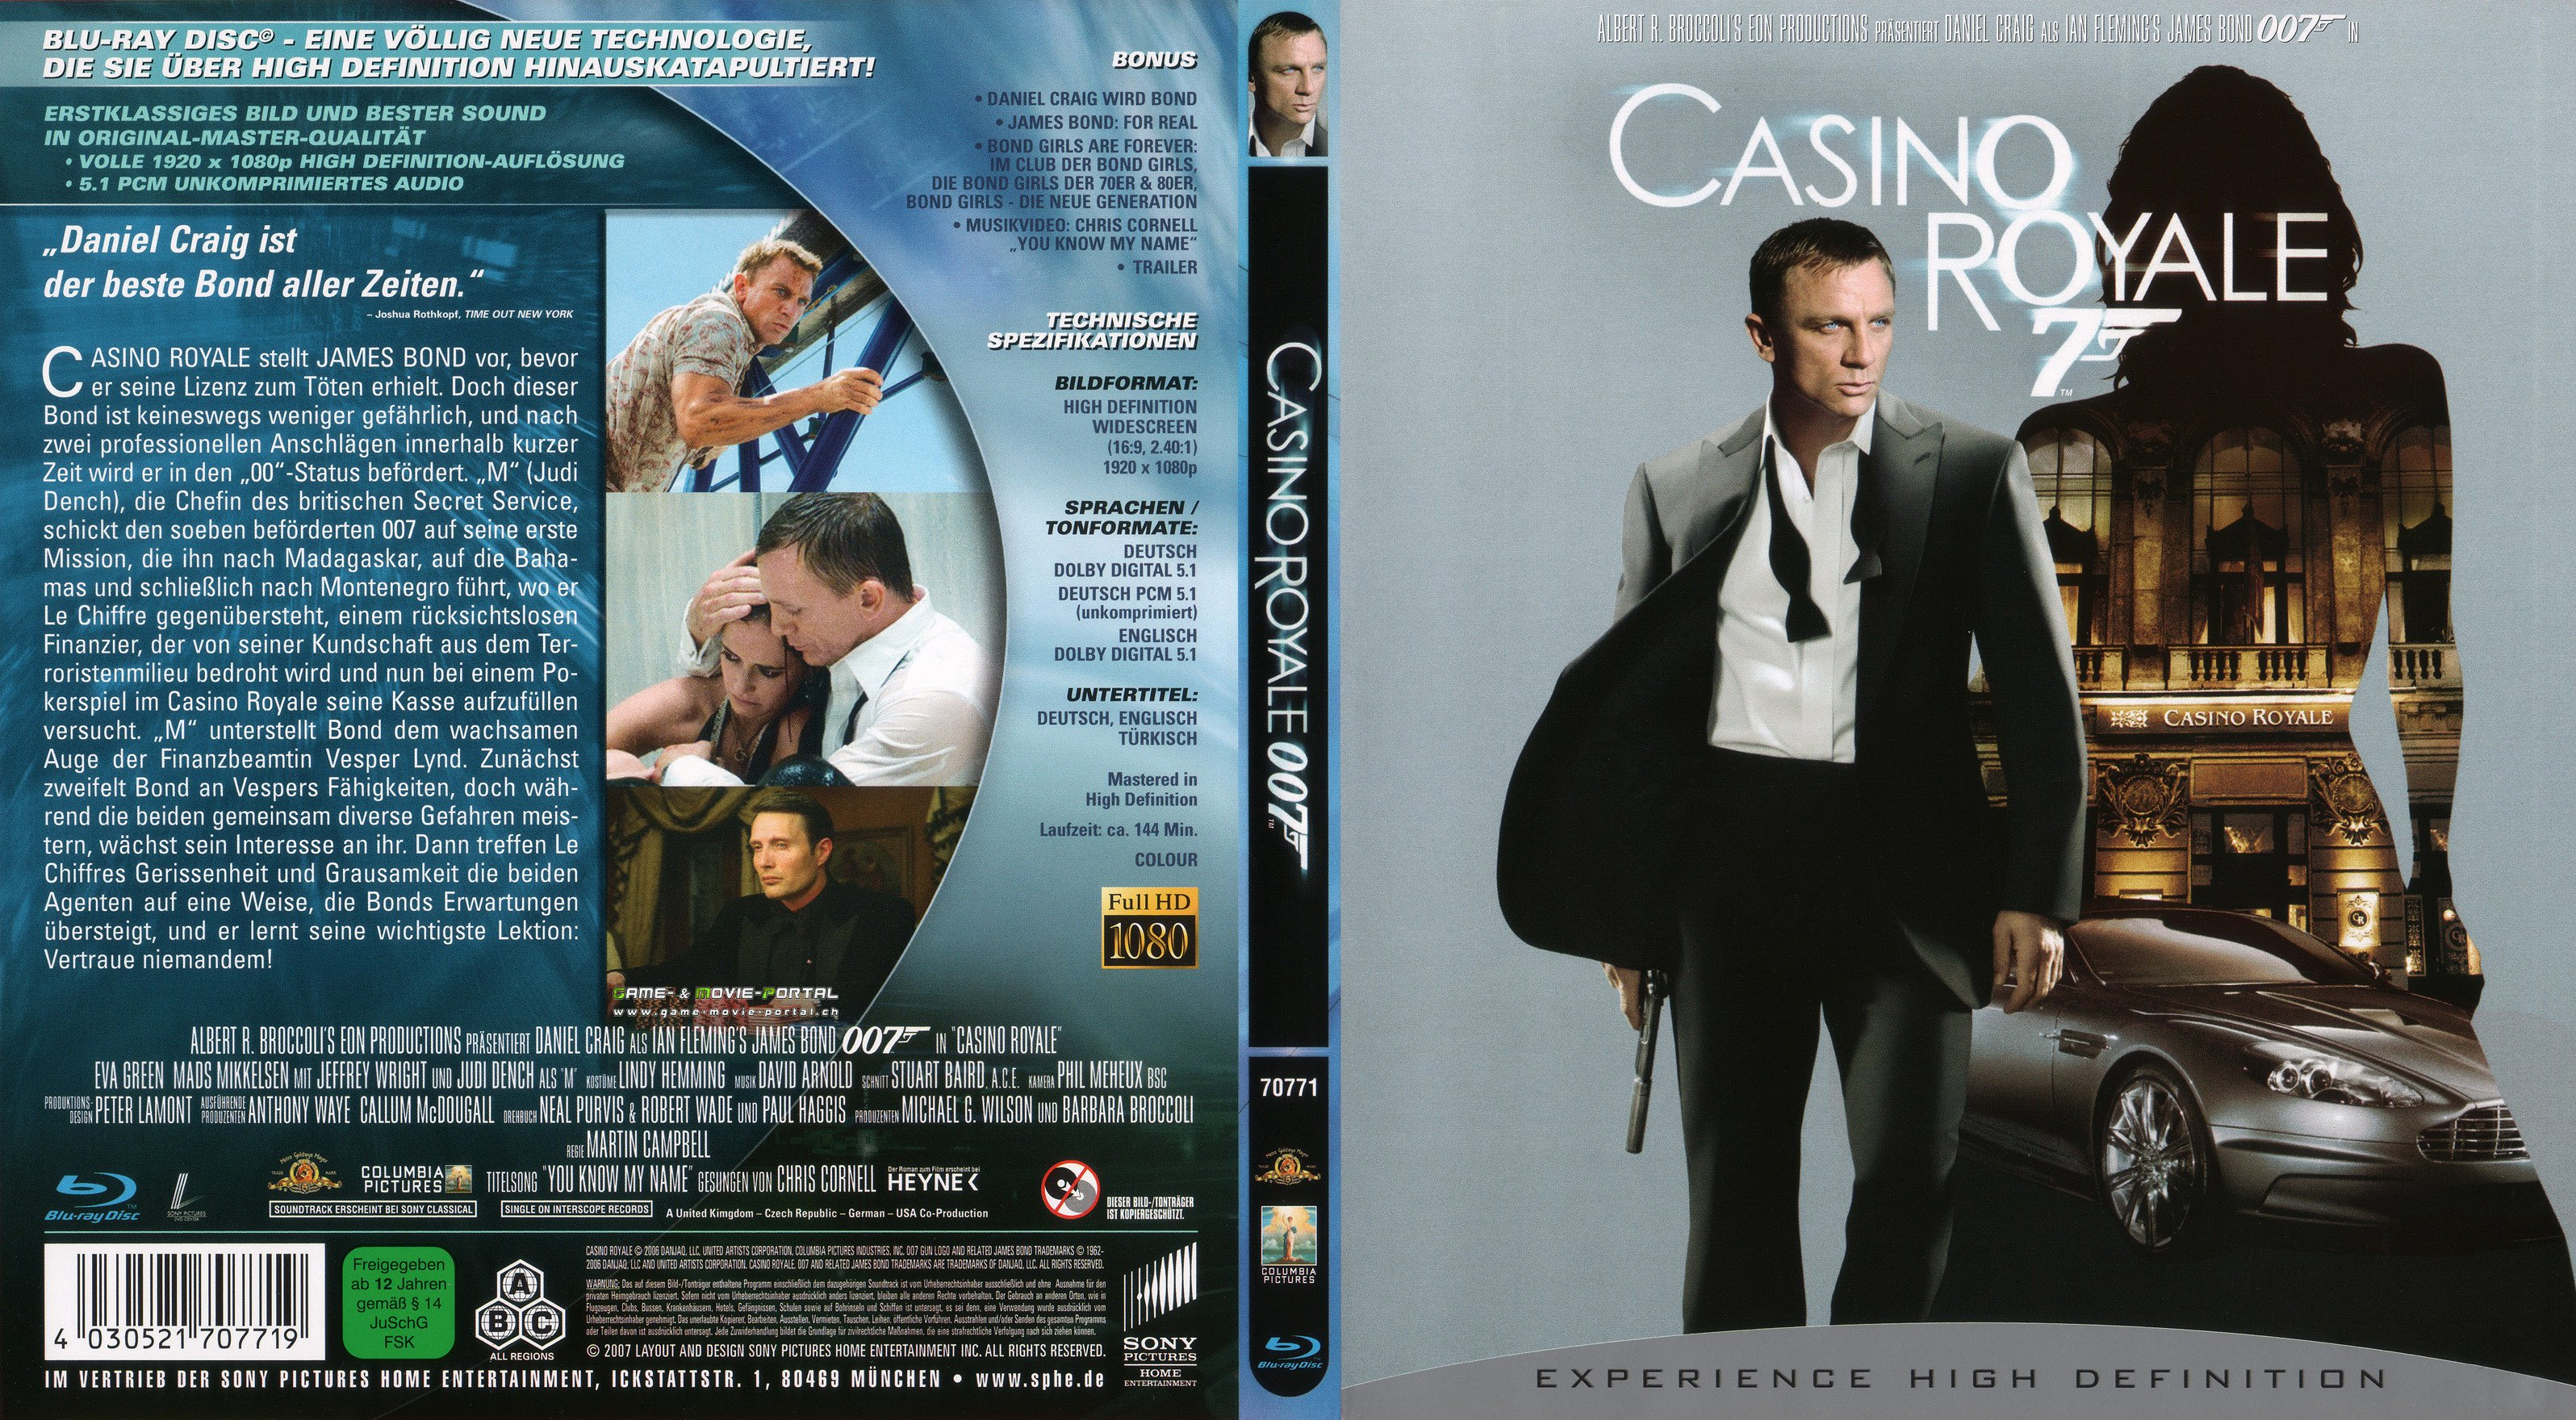 james bond casino royale dvd cover